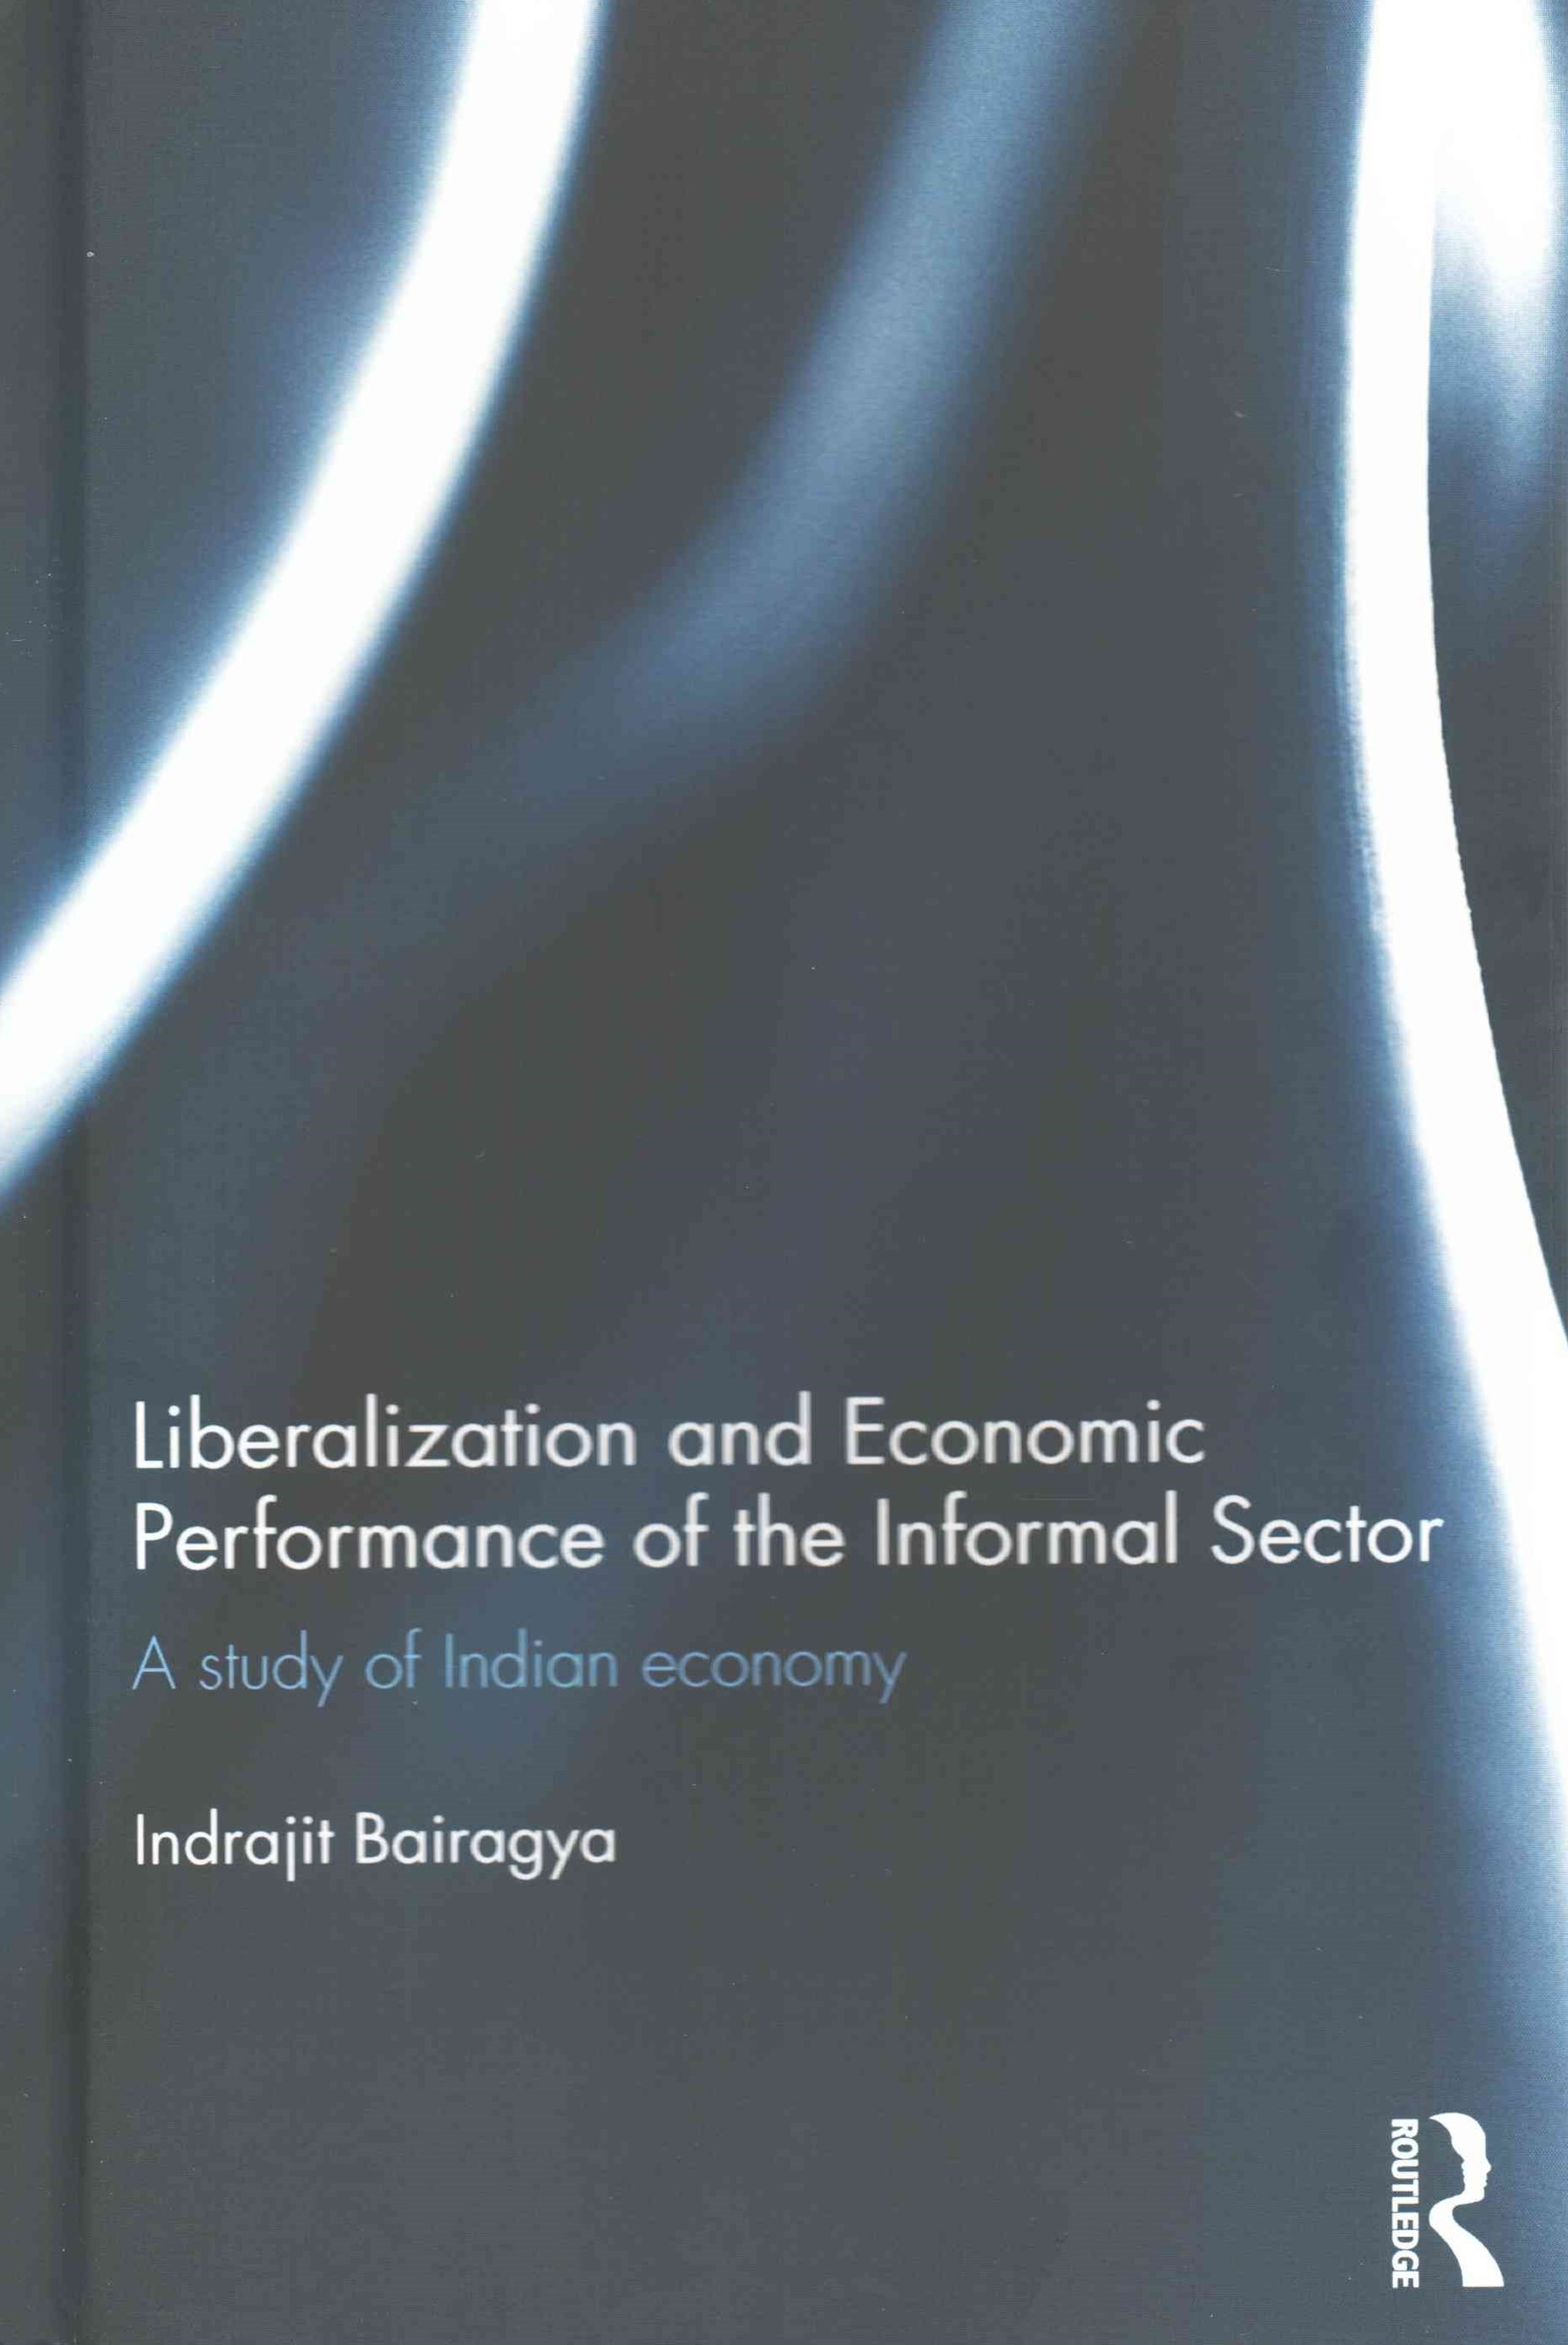 Liberalization and Economic Performance of the Informal Sector